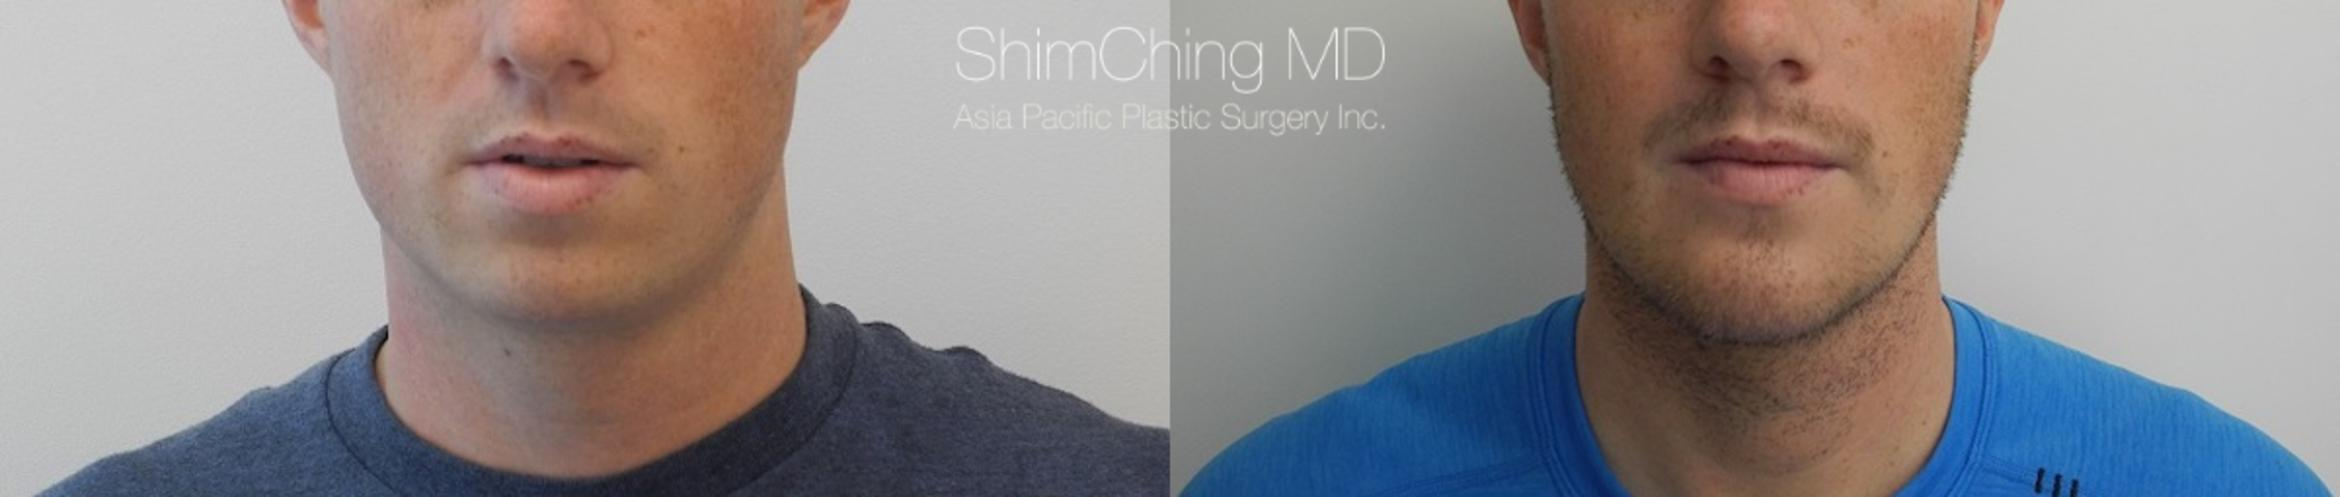 Chin Case 18 Before & After View #1 | Honolulu, HI | Shim Ching, MD: Asia Pacific Plastic Surgery